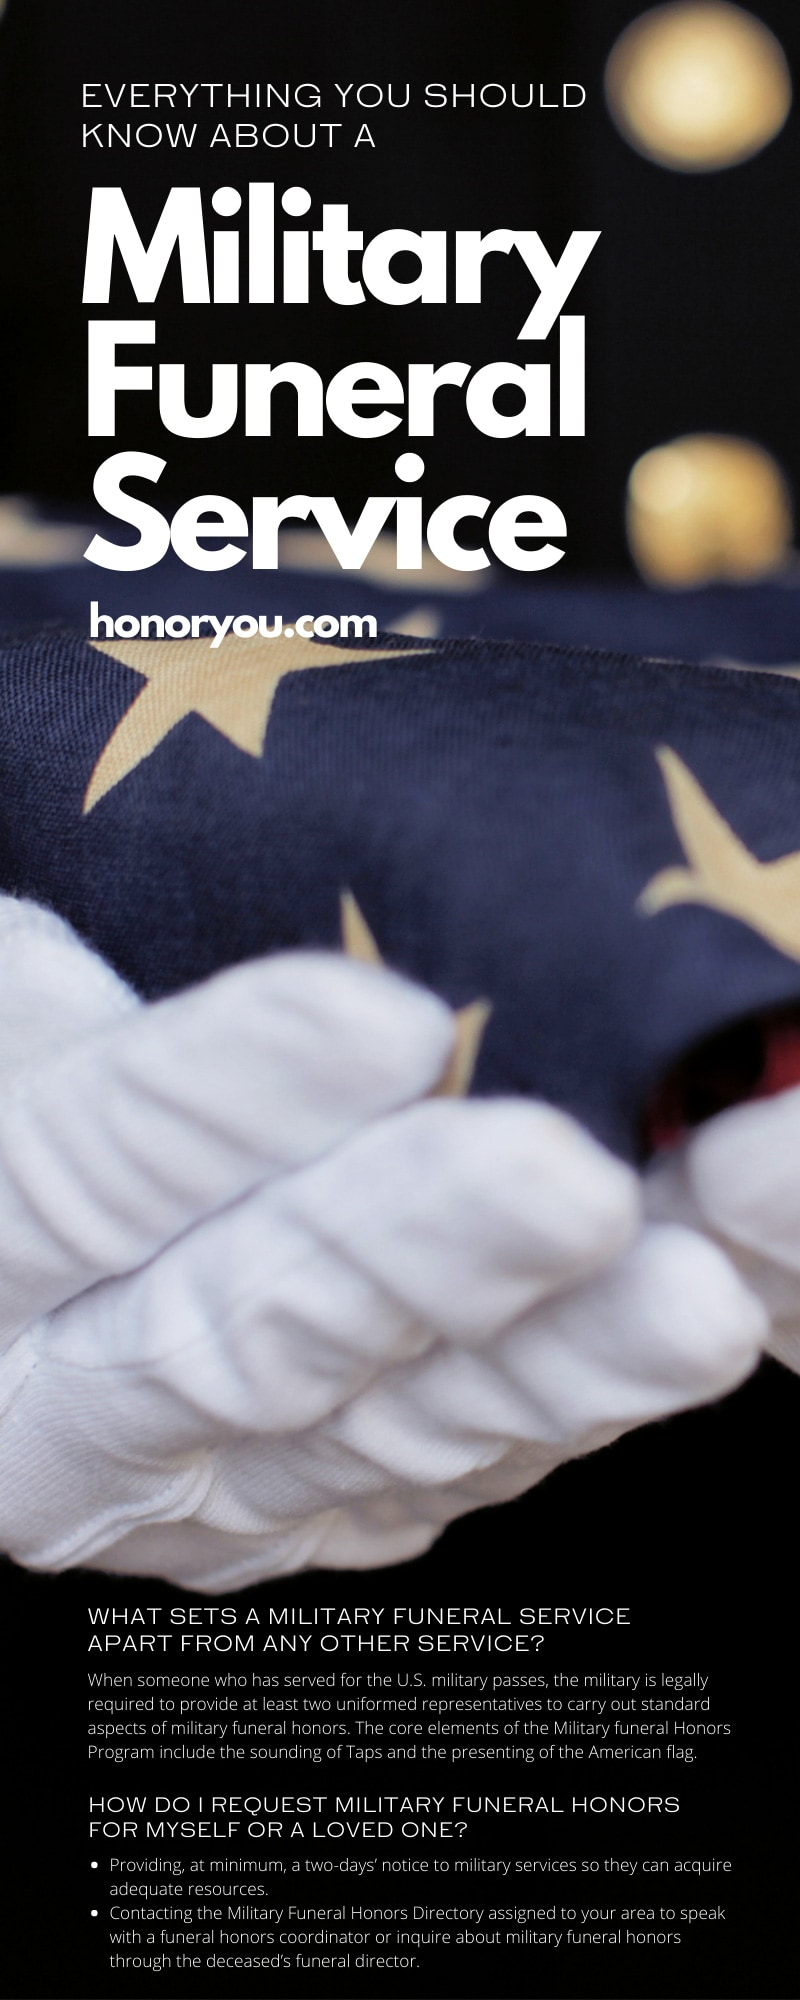 Everything You Should Know About a Military Funeral Service